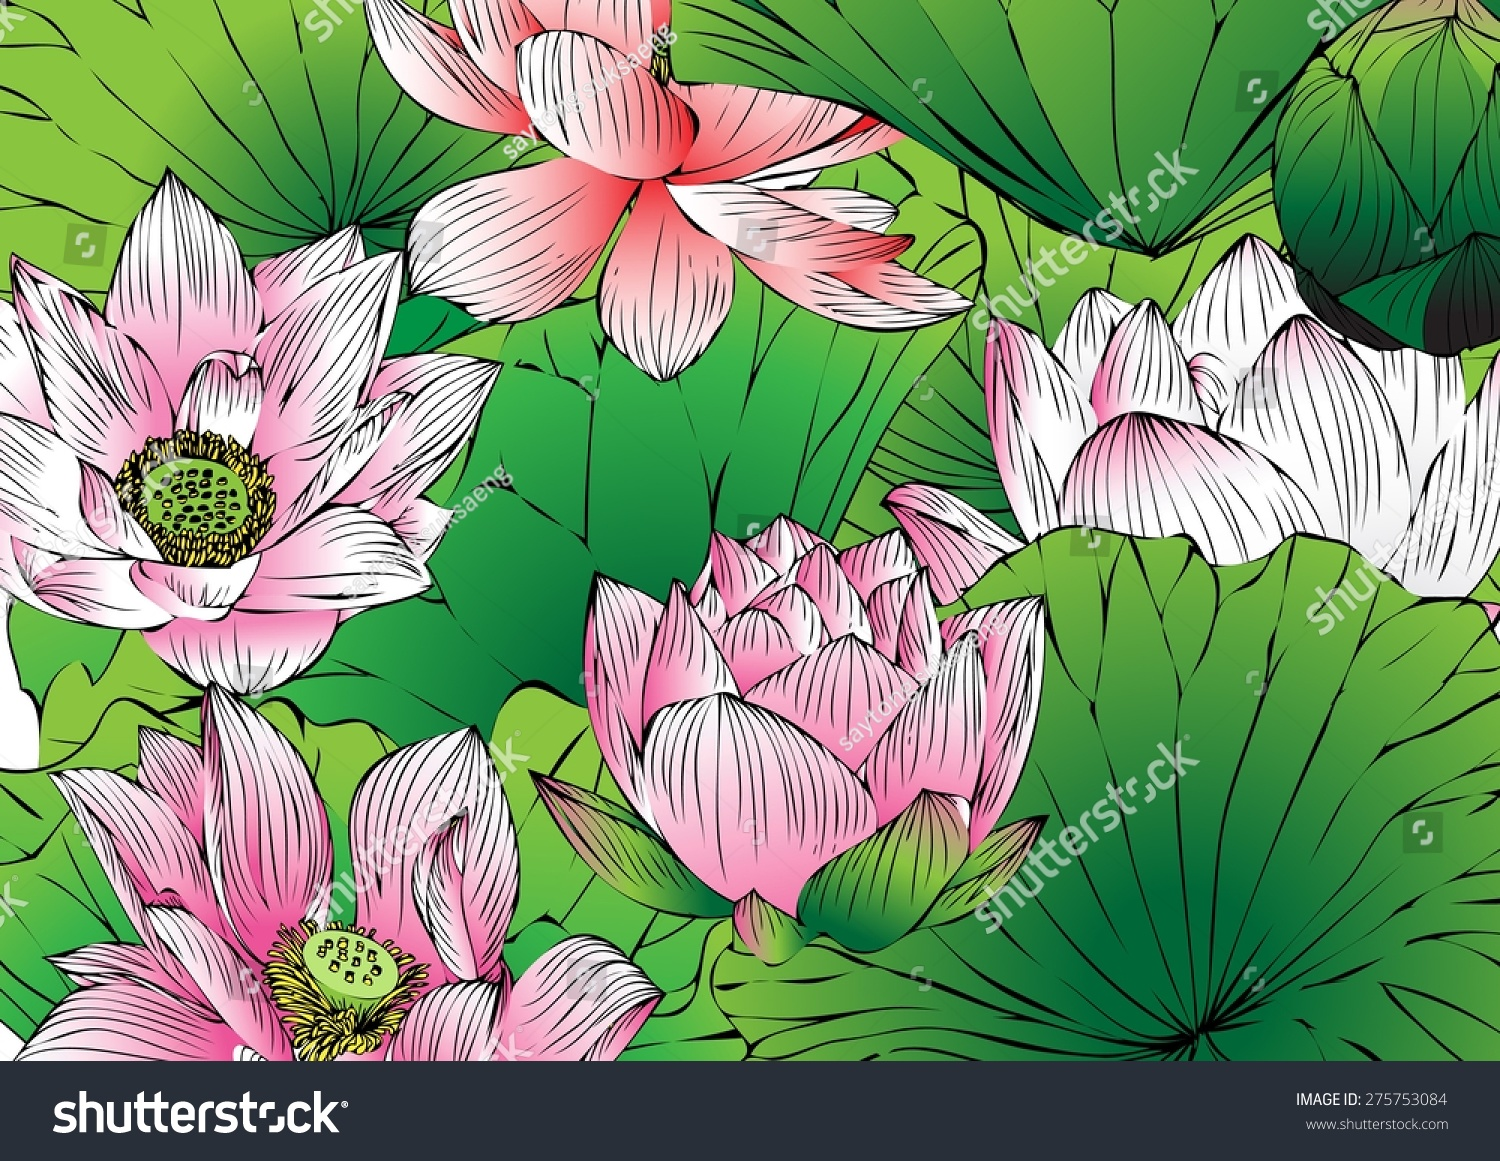 Lotus paintings vector hand drawn lotus flowers stock photo photo lotus paintingsvector of hand drawn lotus flowers and leaves sketch floral botany collection izmirmasajfo